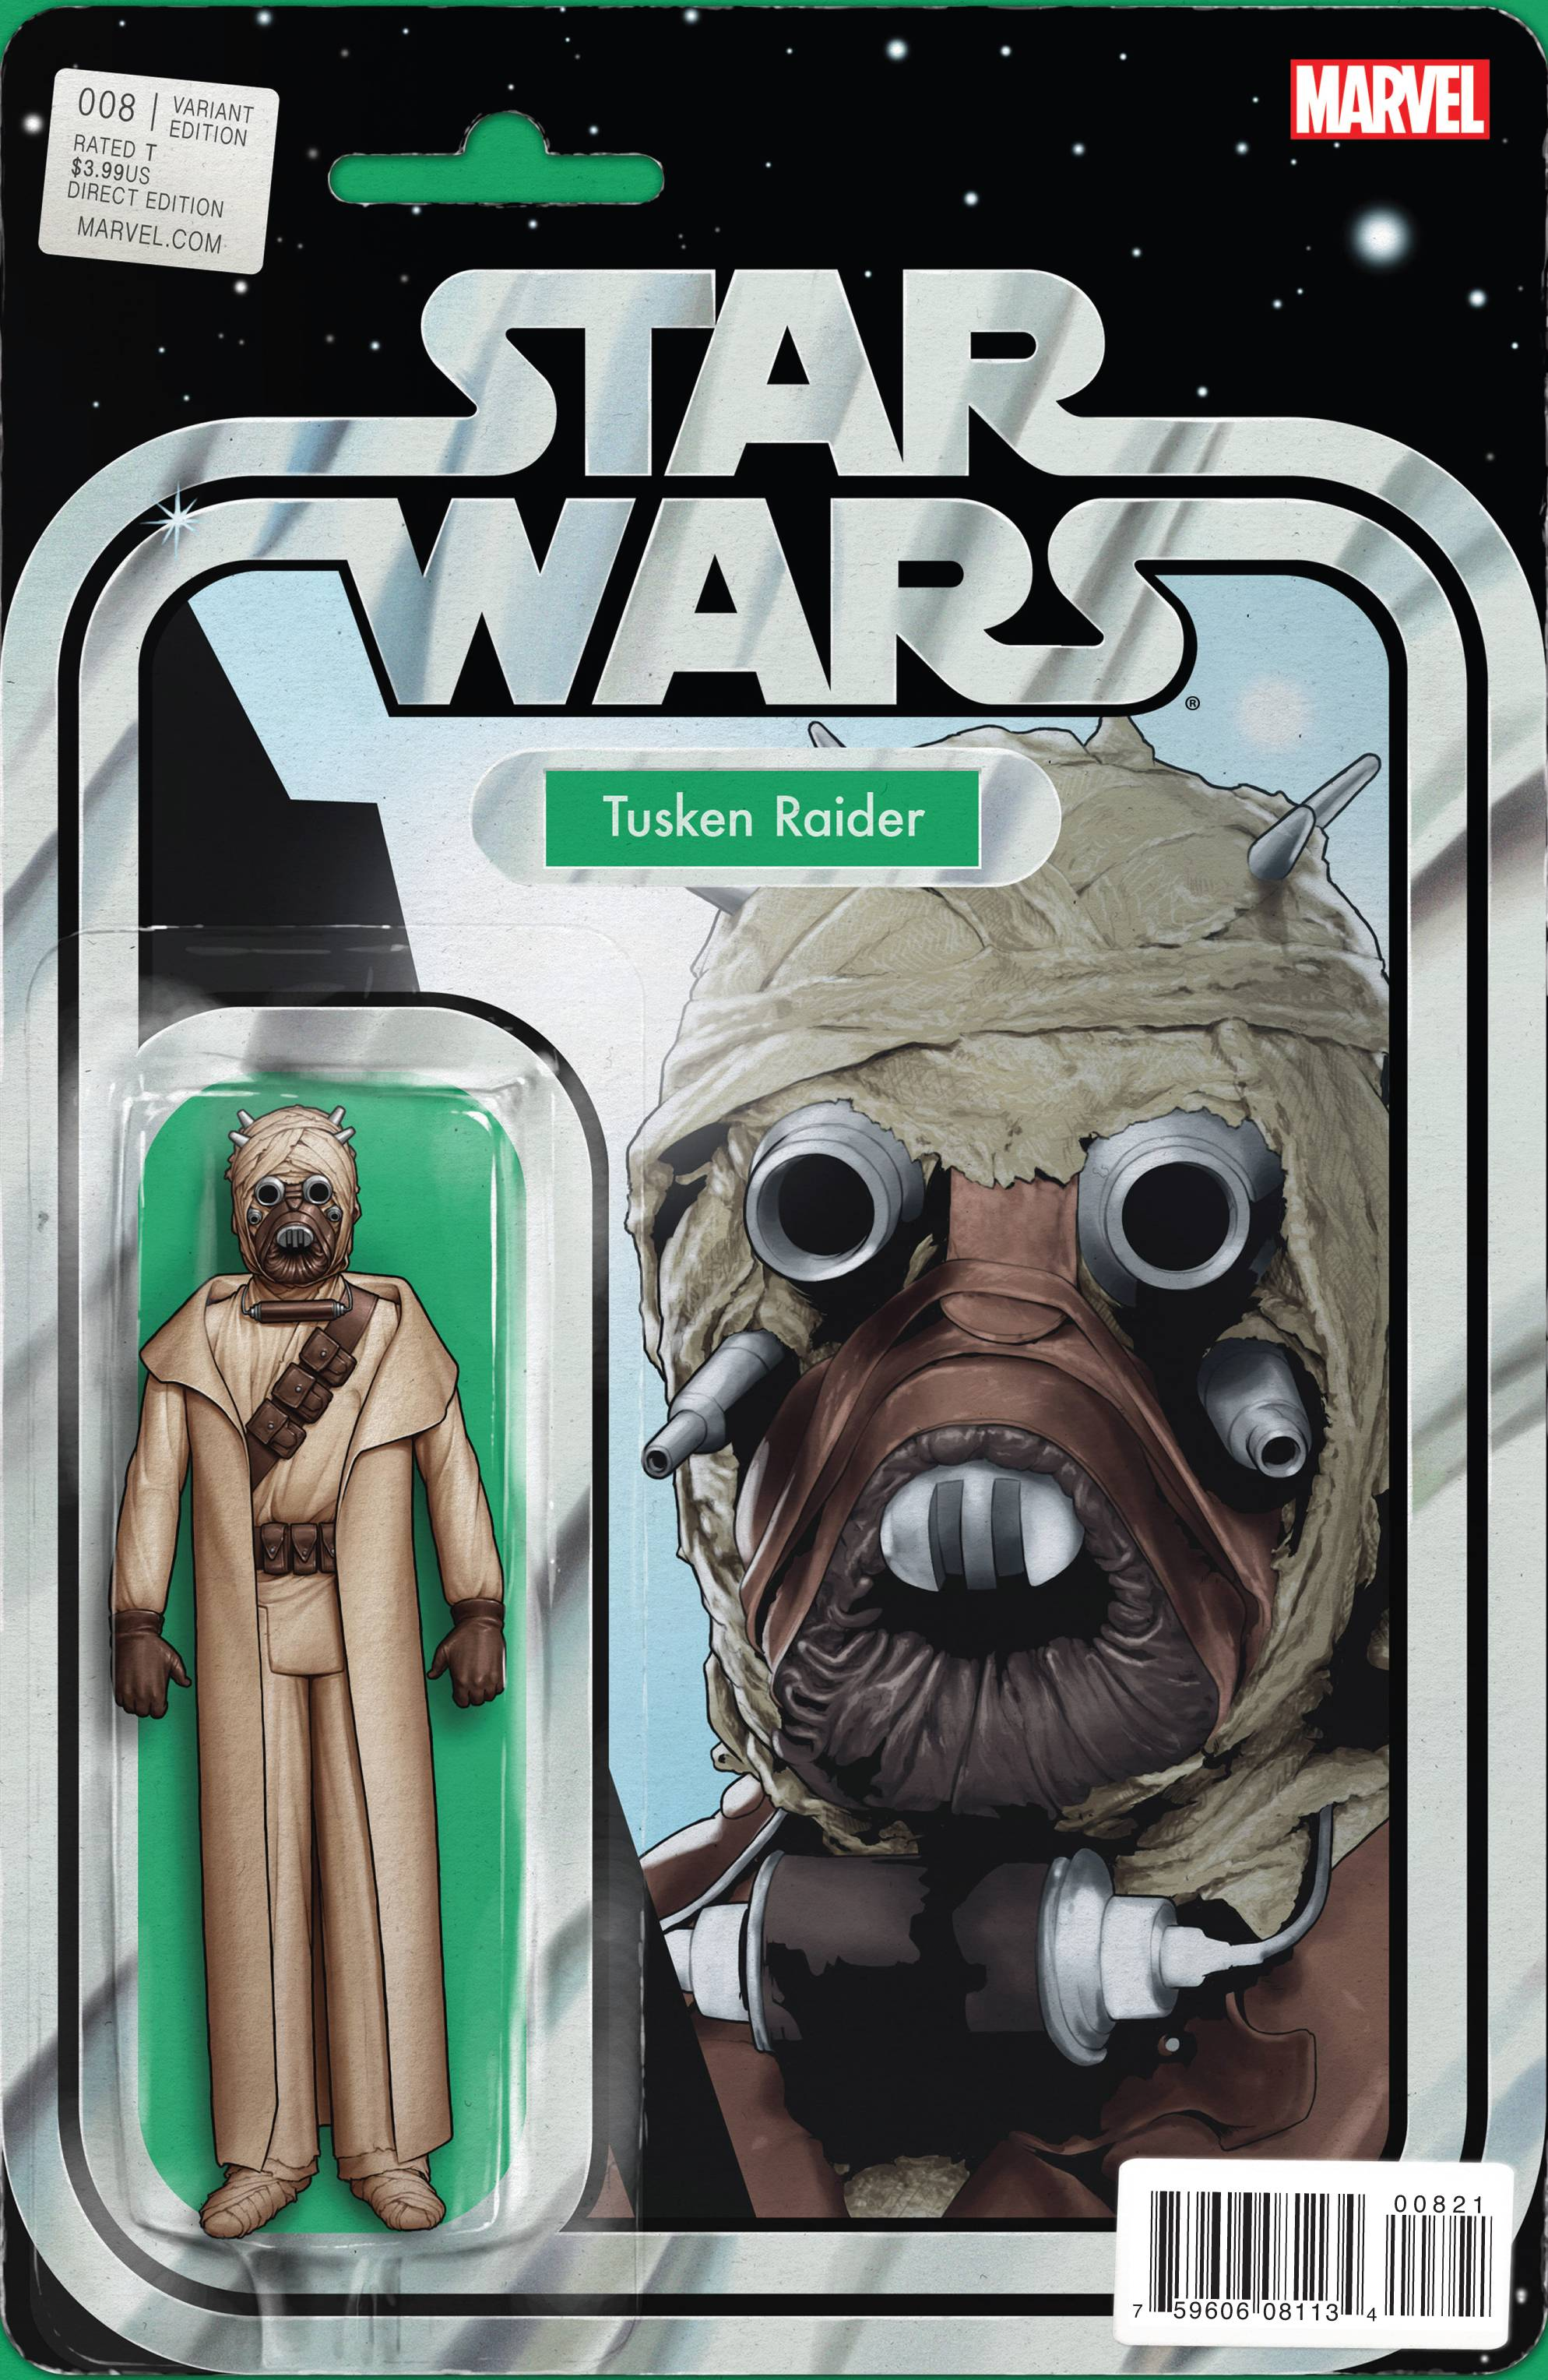 Star Wars #8 (Action Figure Variant Cover) (19.08.2015)